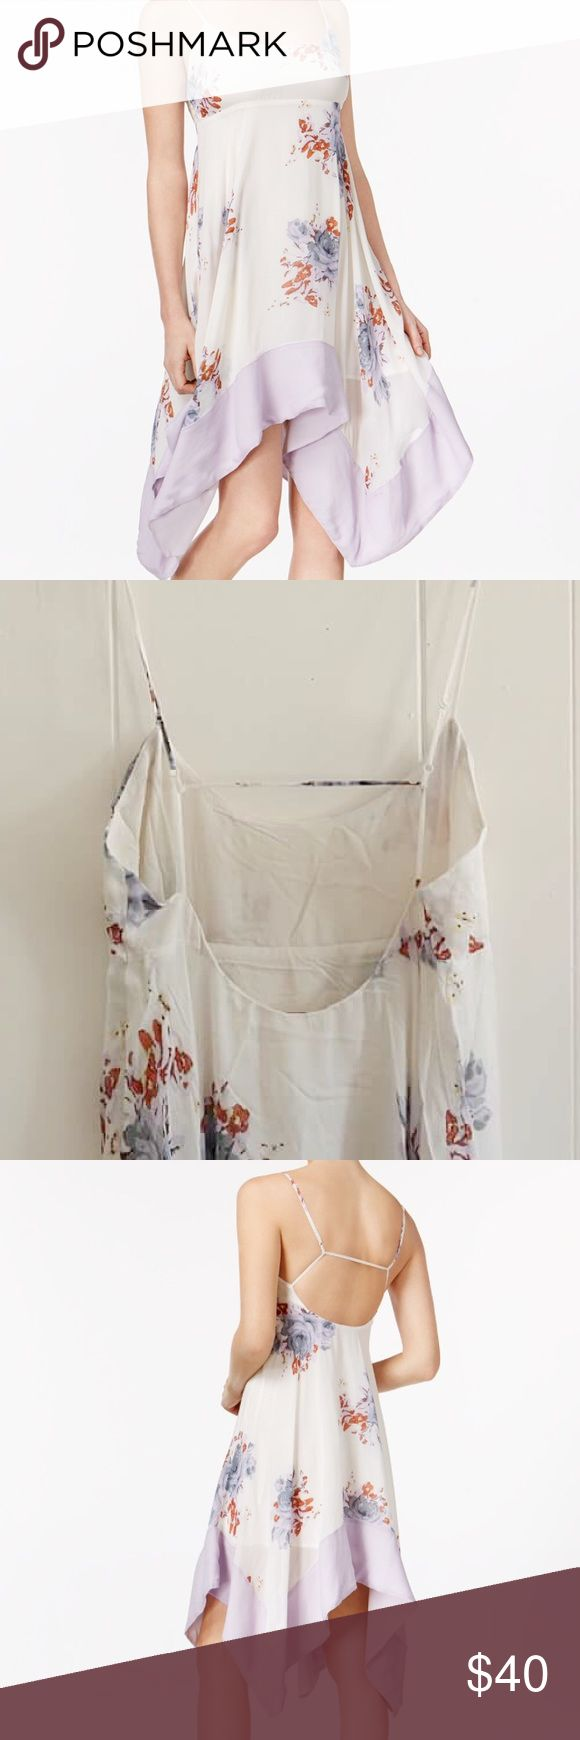 ✨FLASH SALE✨NWT Free People Dress This is A NWT Free People Faded Bloom Dress. A very beautiful dress, perfect for summer. It has an asymmetric hem and adjustable straps. Free People Dresses Asymmetrical